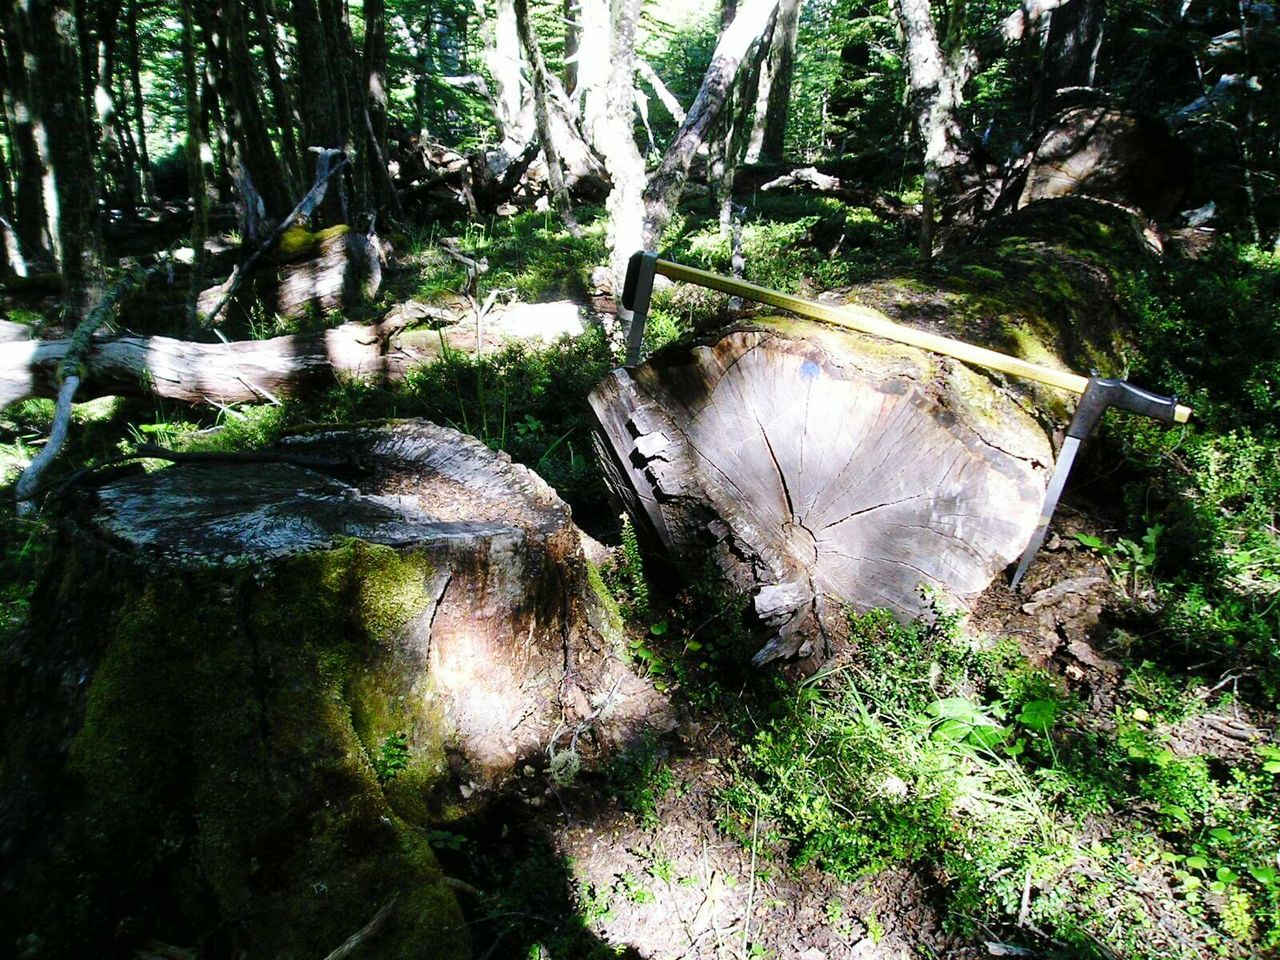 Bosque Tronco Sustentable Measuring Nothofagus Logs árbol Medir Medicion Forest Log Silvicultura Silviculture